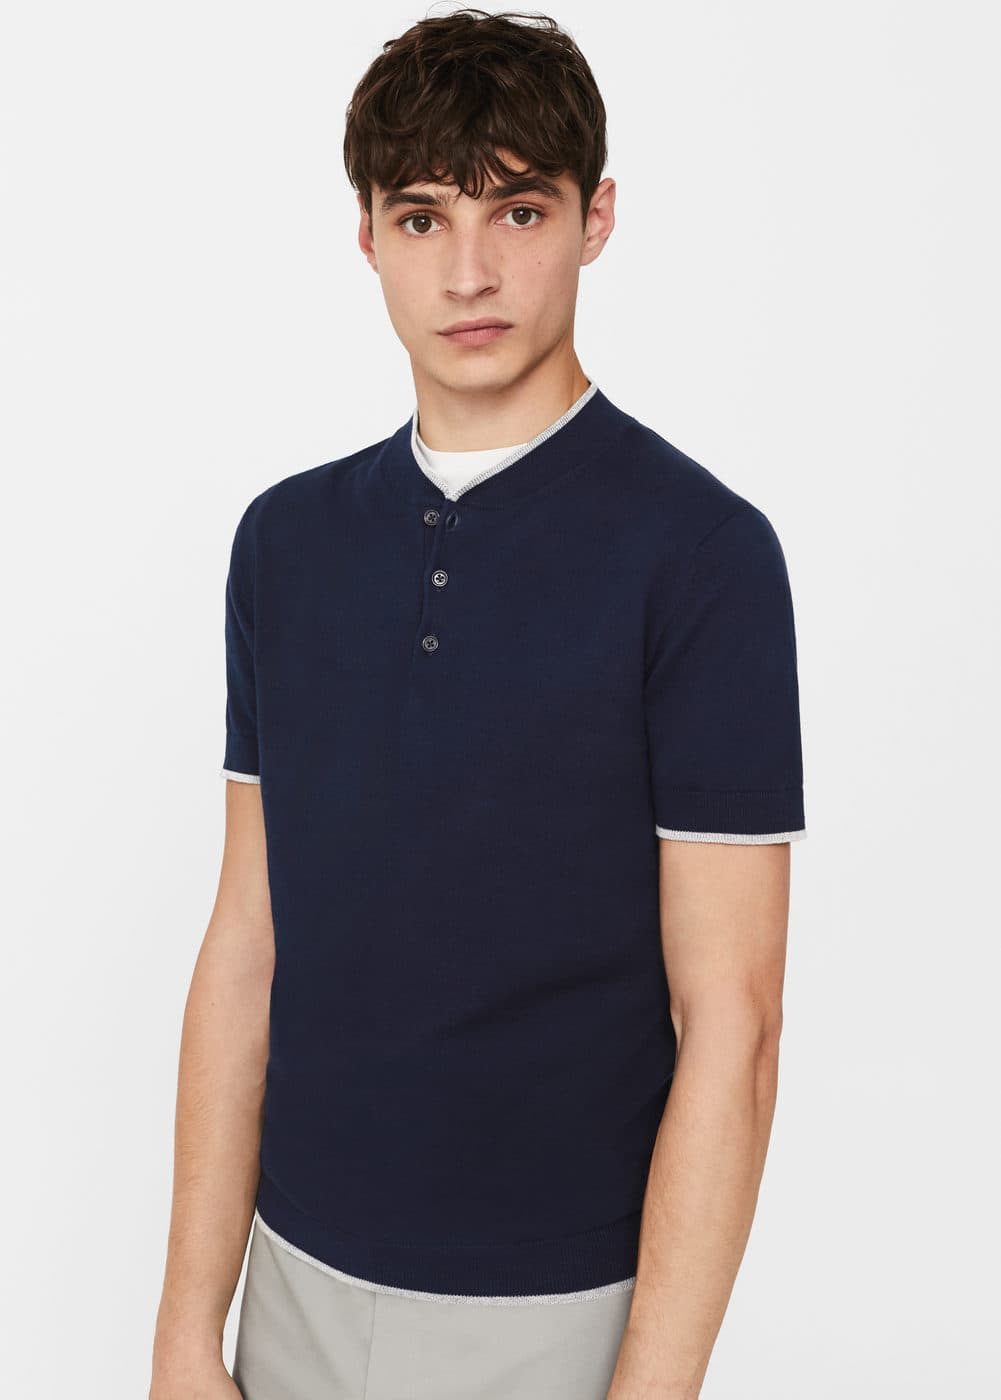 Polohemd mit button-down-kragen | MANGO MAN